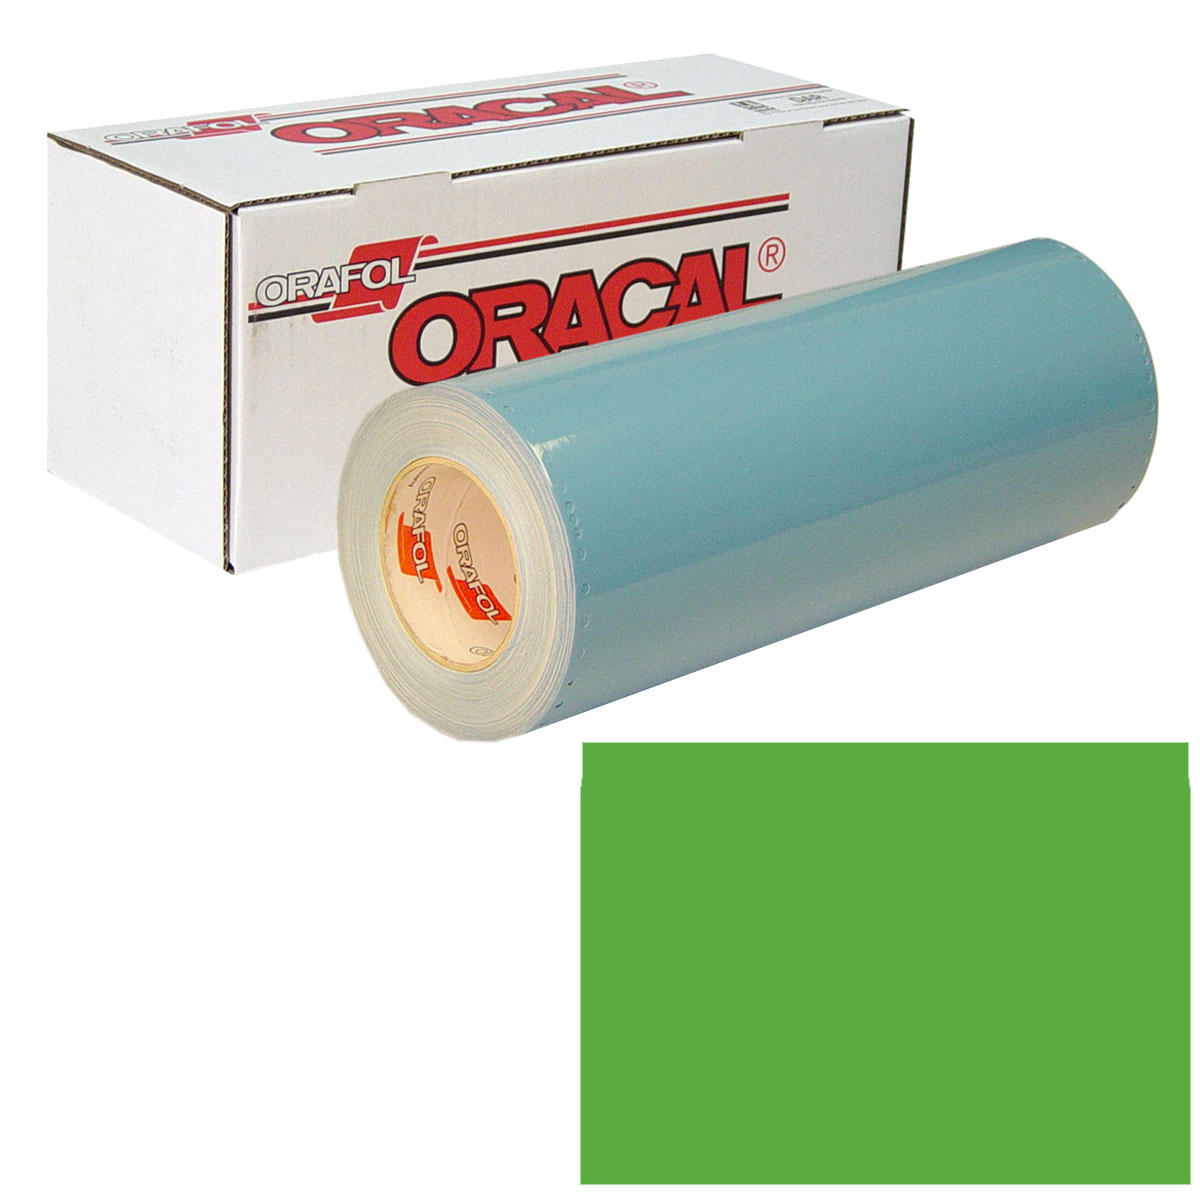 ORACAL 751 Unp 24In X 50Yd 063 Lime-Tree Gree